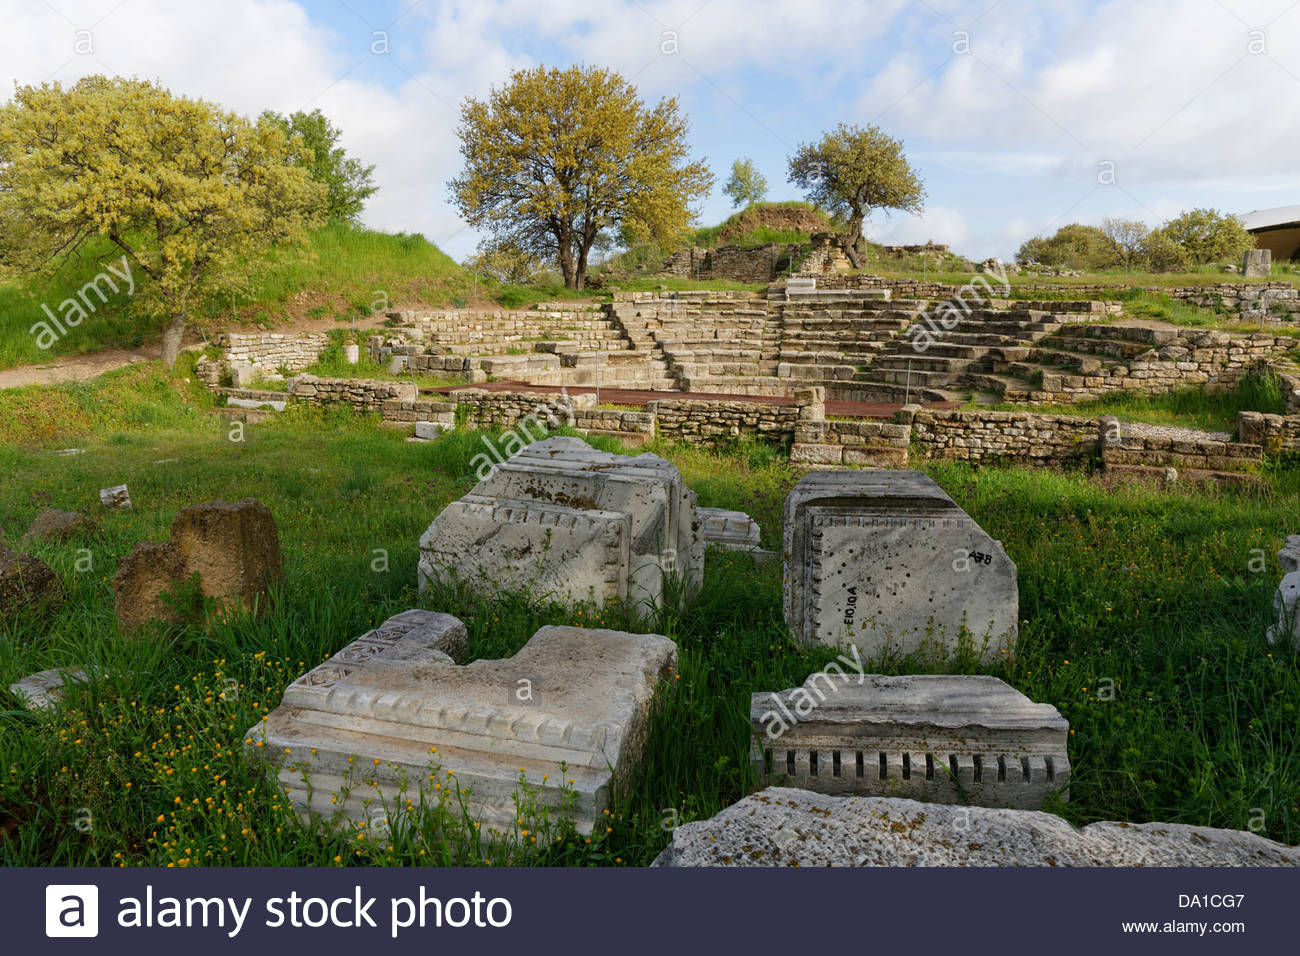 Turkey, Troy, View of Odeon theatre - Stock Image